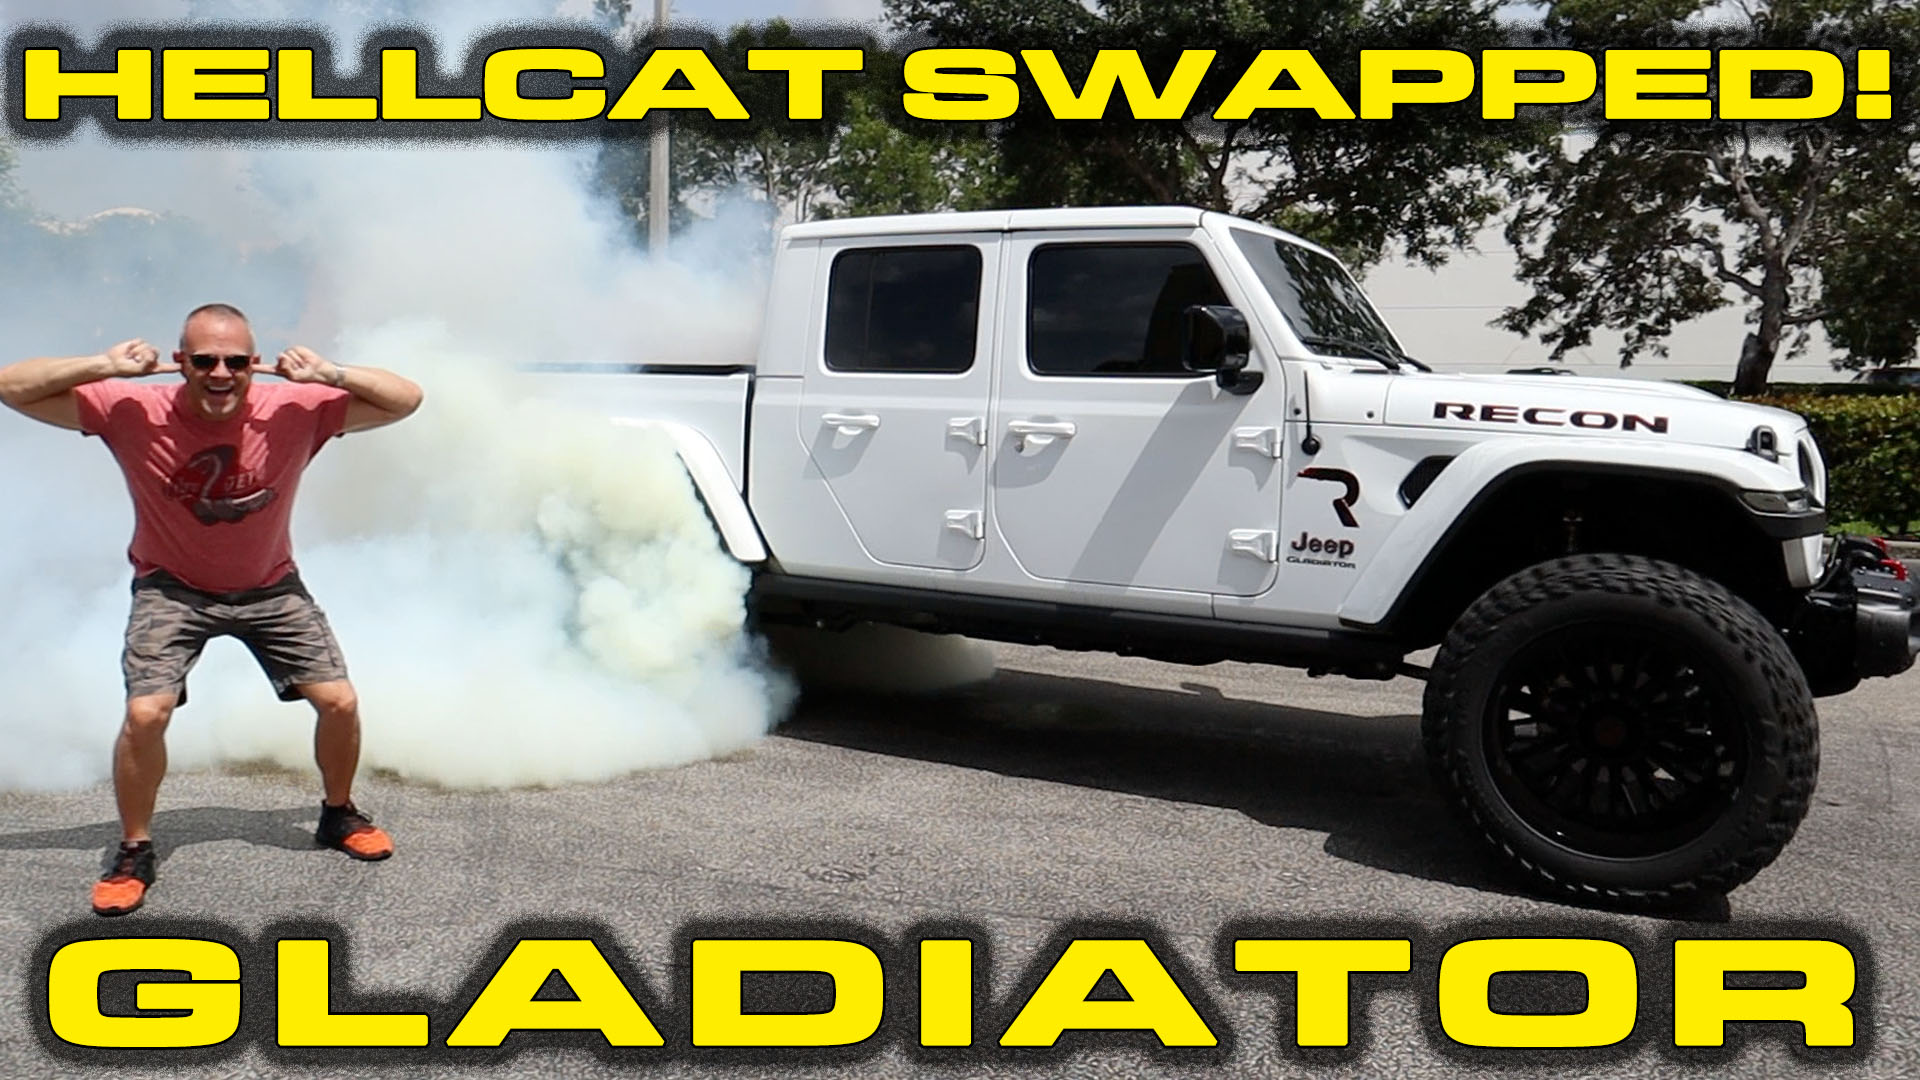 HELLCAT SWAPPED GLADIATOR * 750+ HP Jeep Gladiator Review and Performance Testing